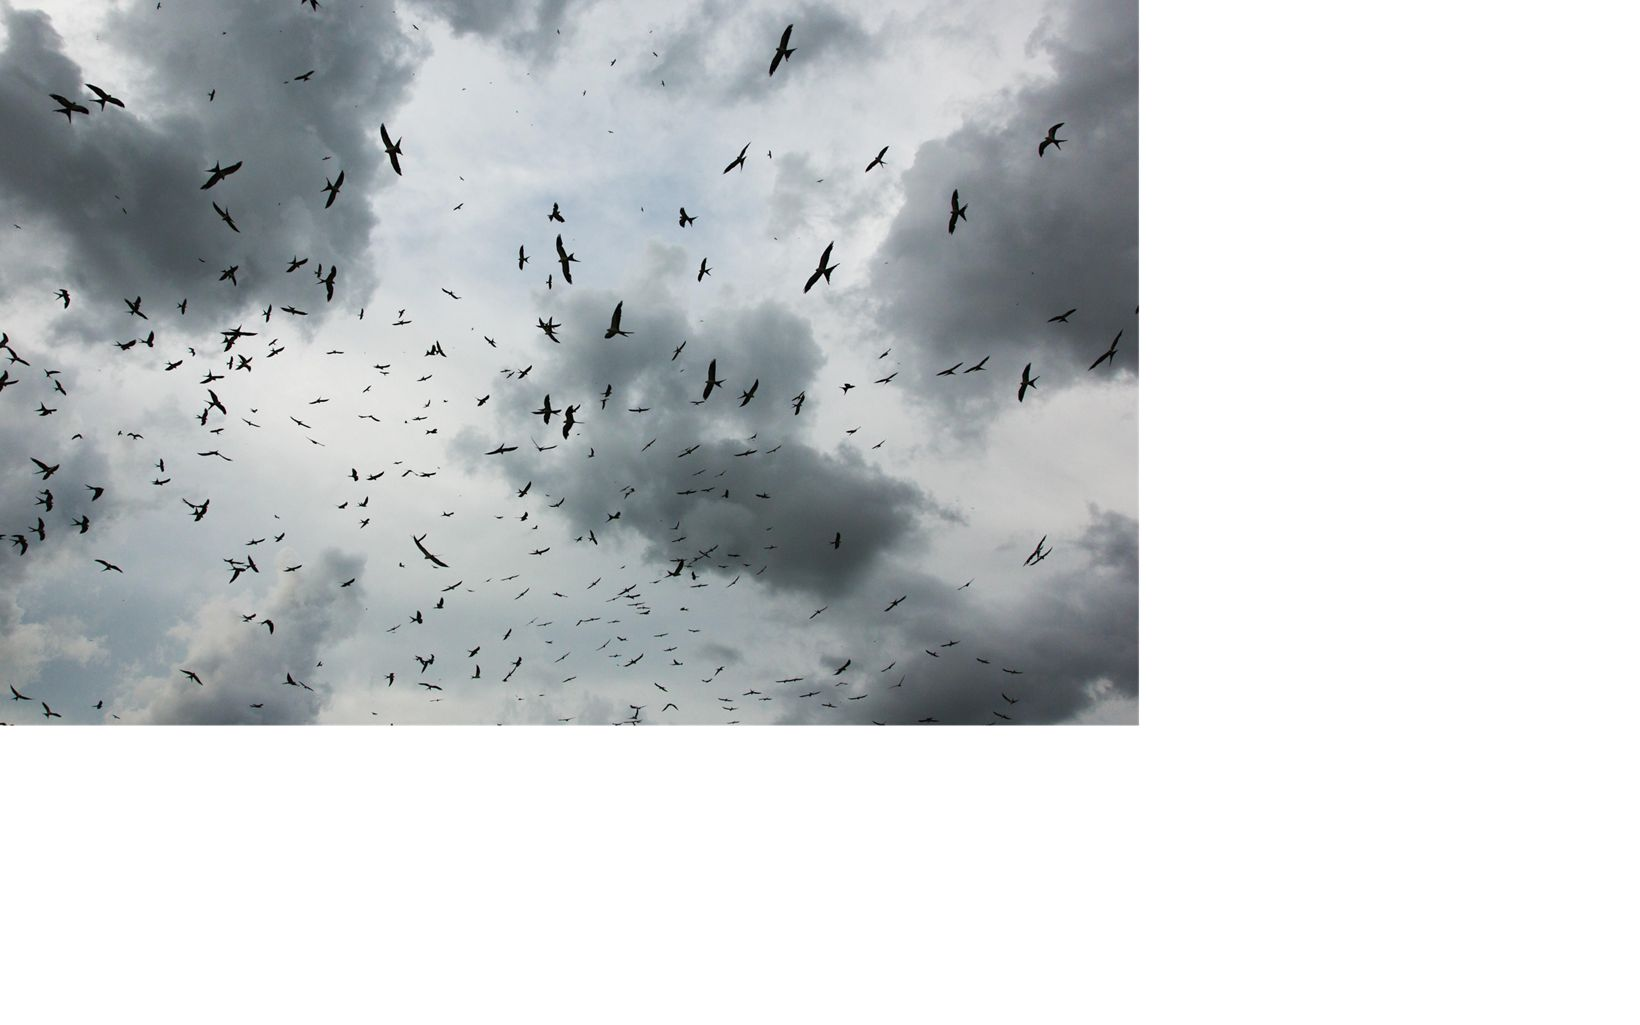 flock of birds in a cloudy sky